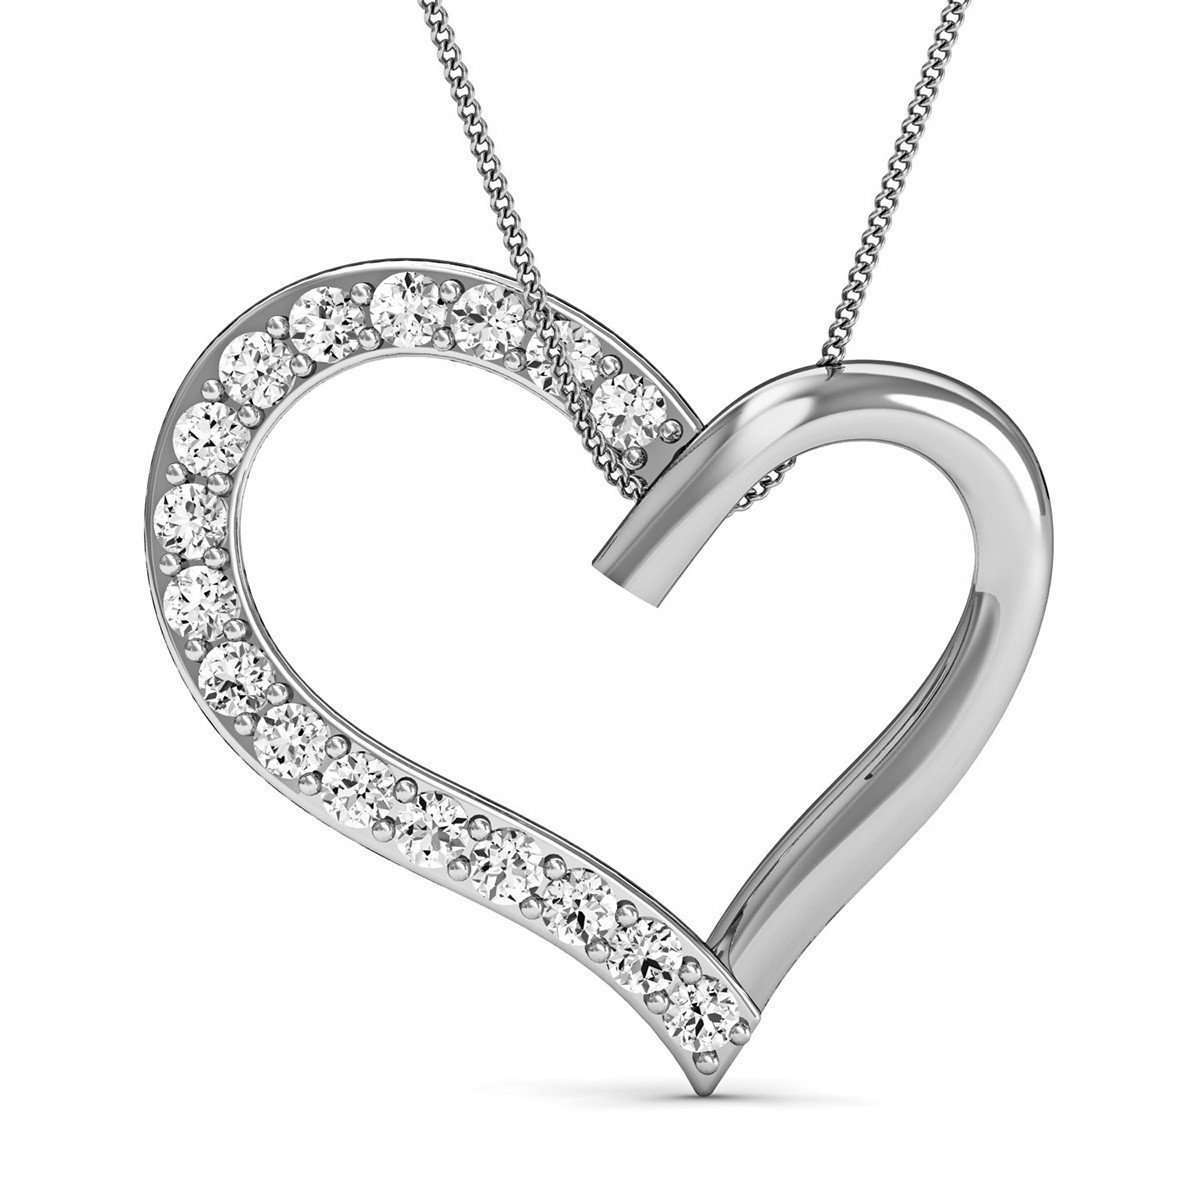 14kt White Gold Heart Pendant with Premium Quality Diamonds-Diamoire Jewels-JewelStreet US